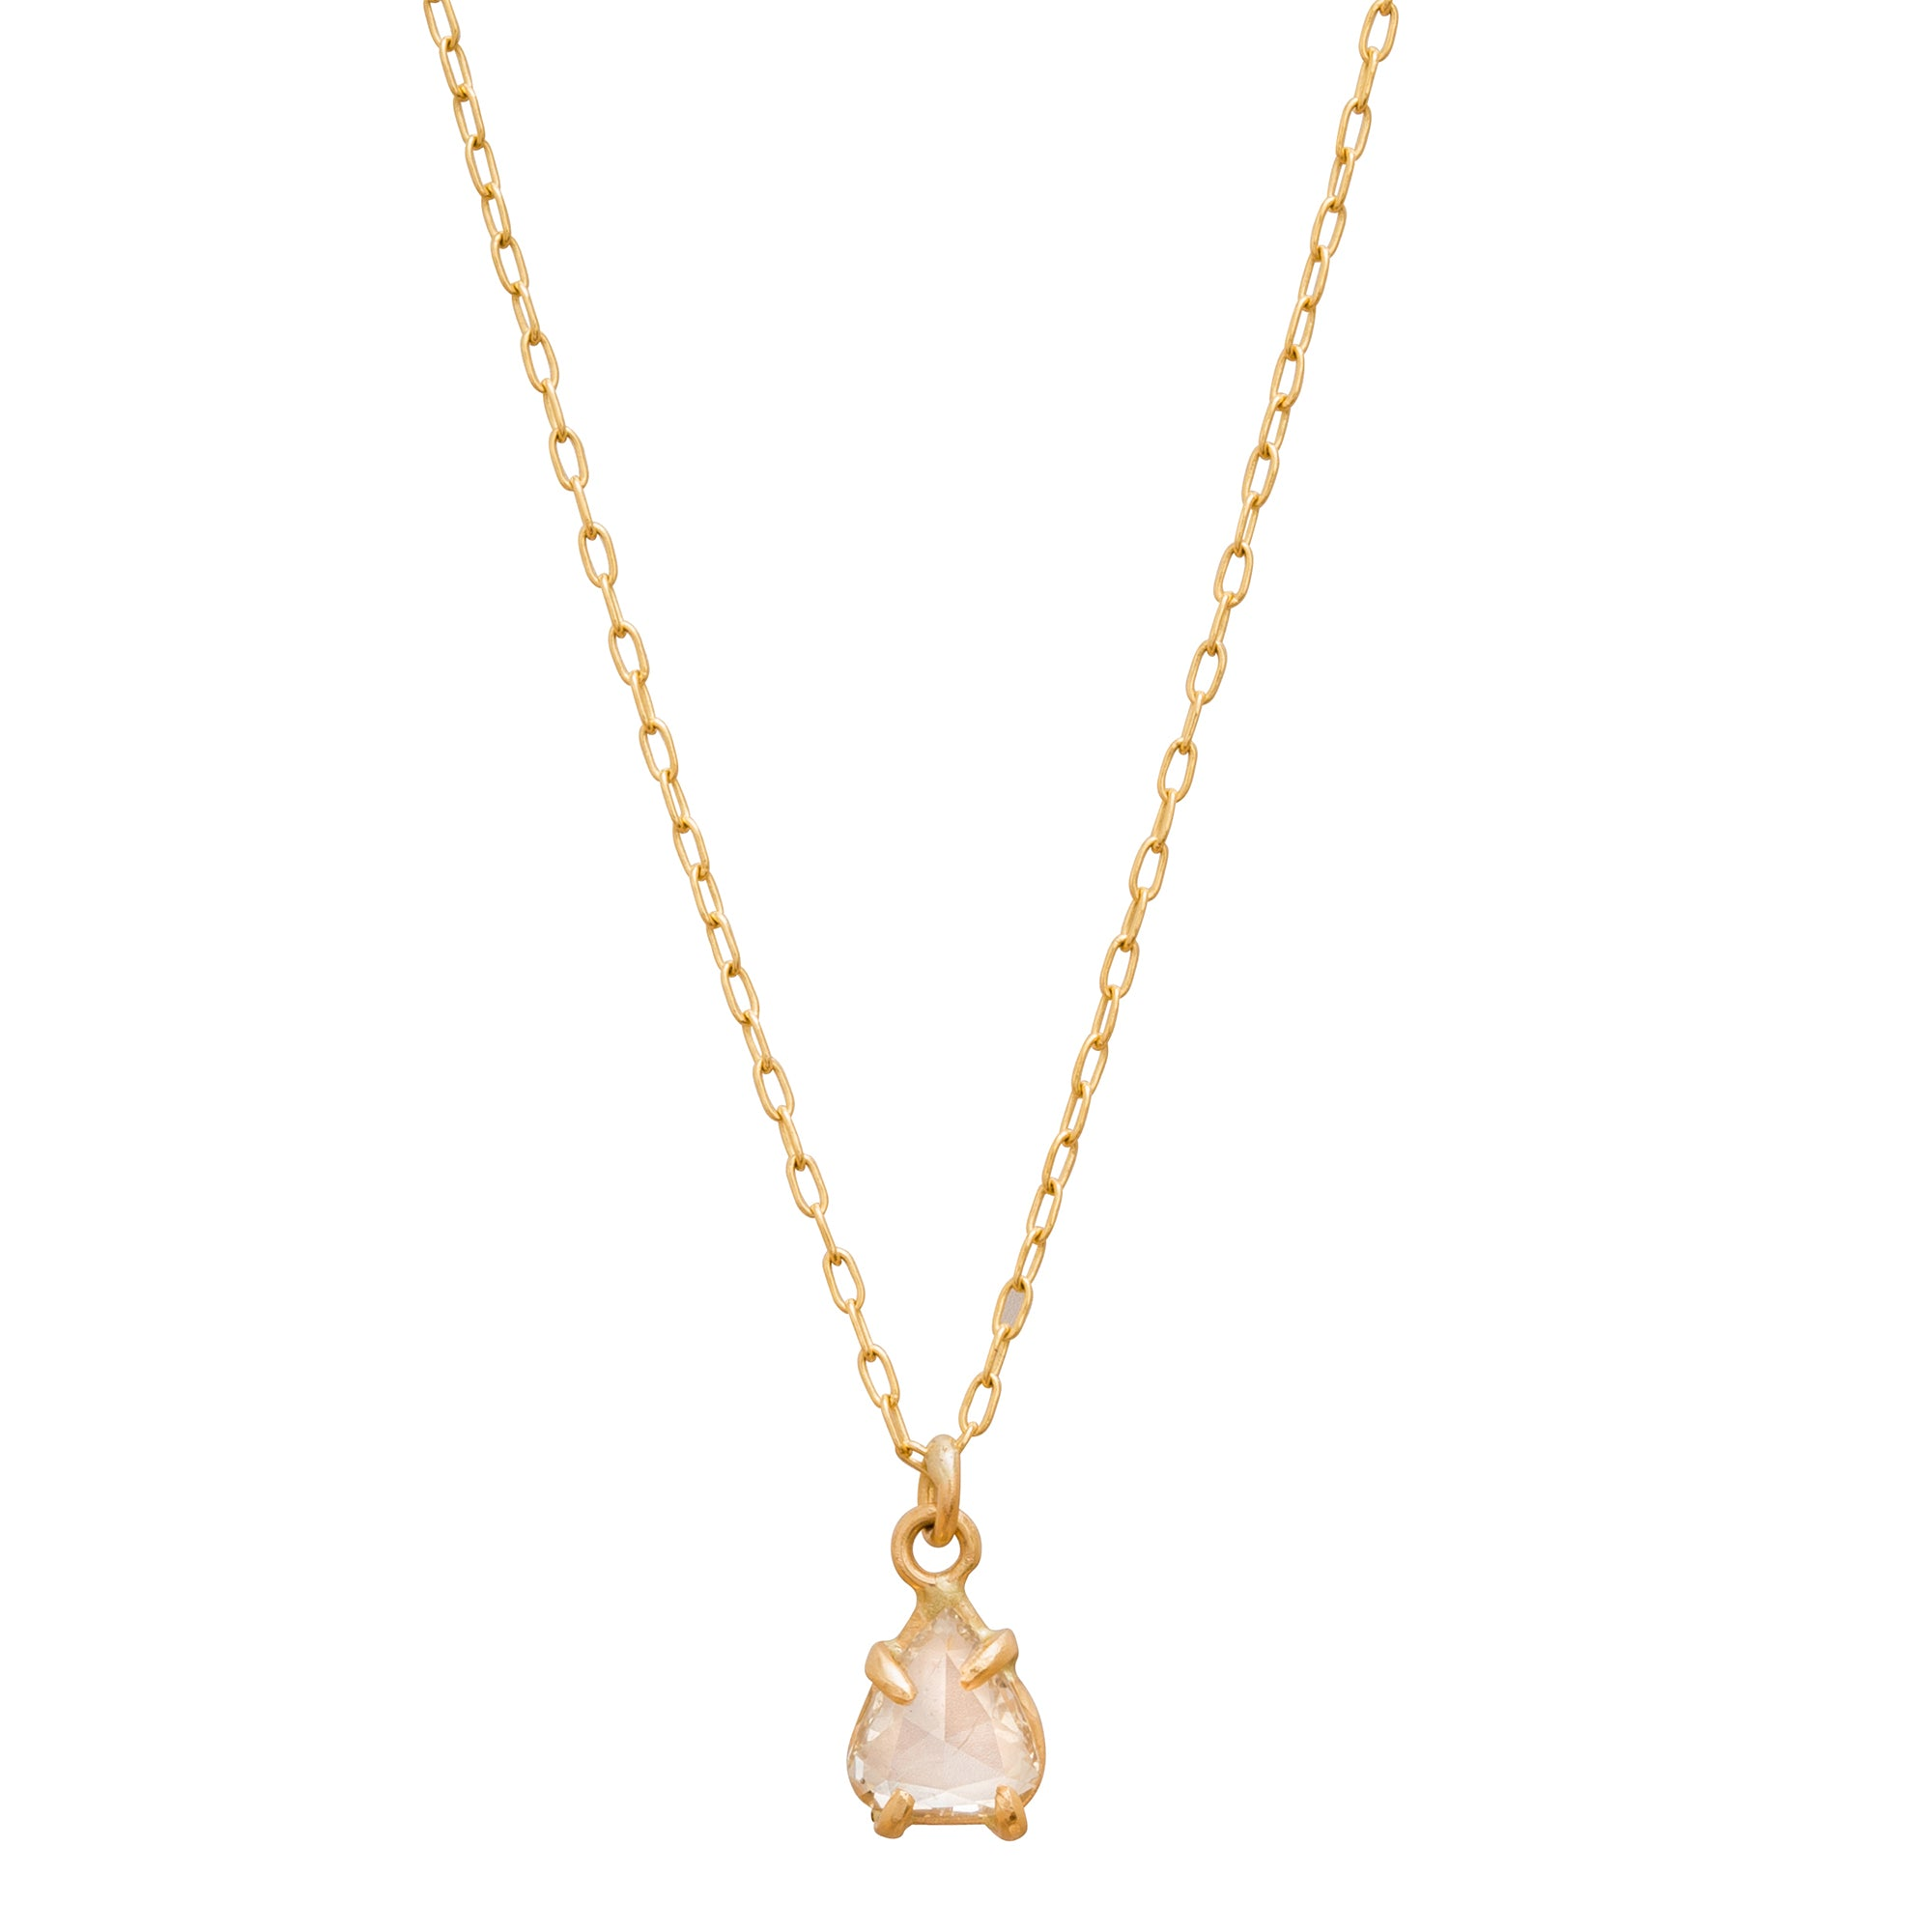 Rosecut Diamond Necklace by Margery Hirschey for Broken English Jewelry